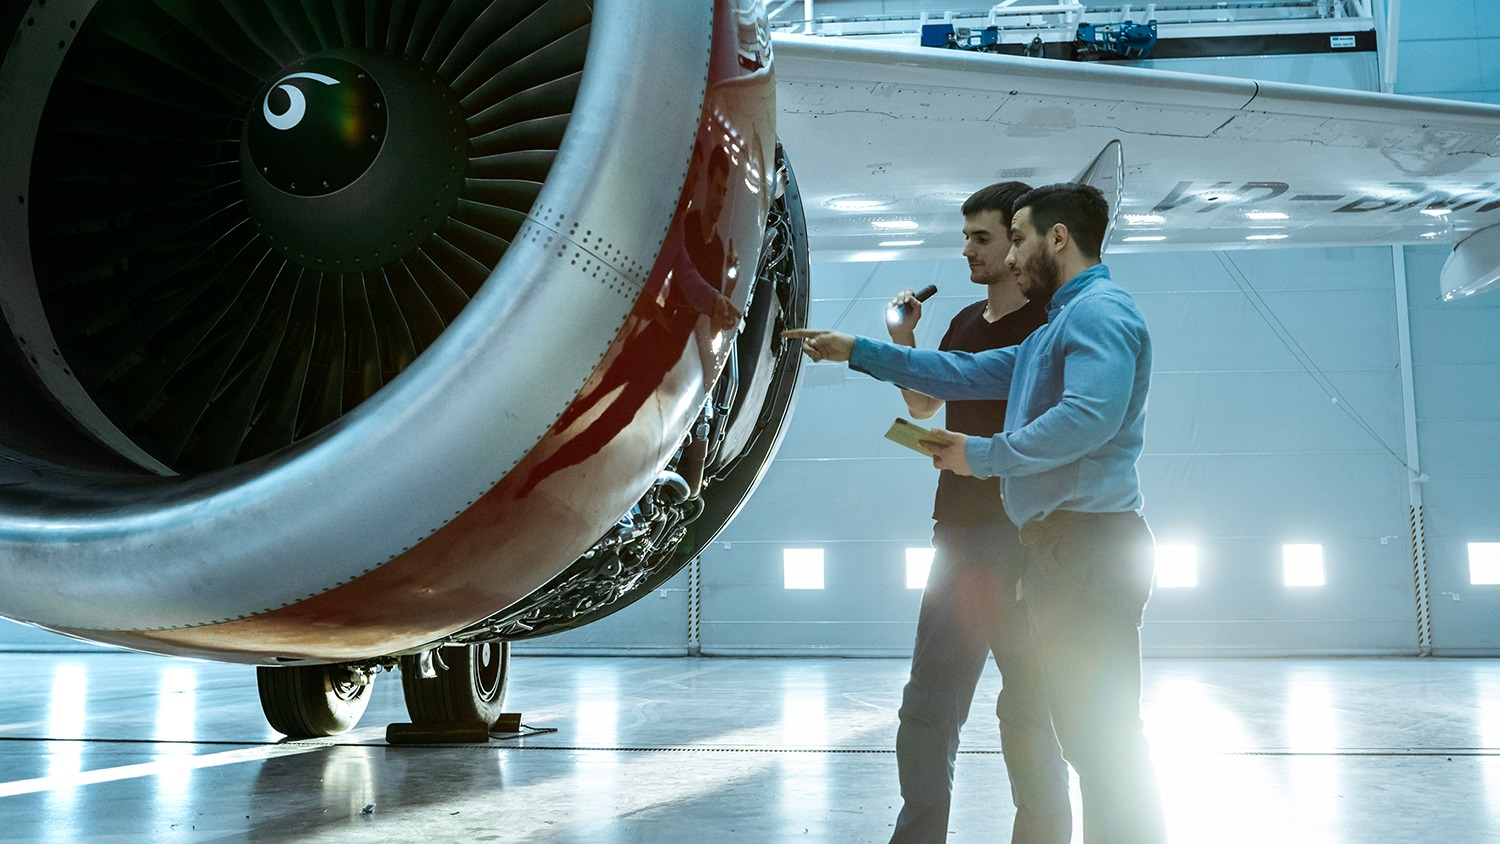 Two men in the Aerospace industry inspecting a plane